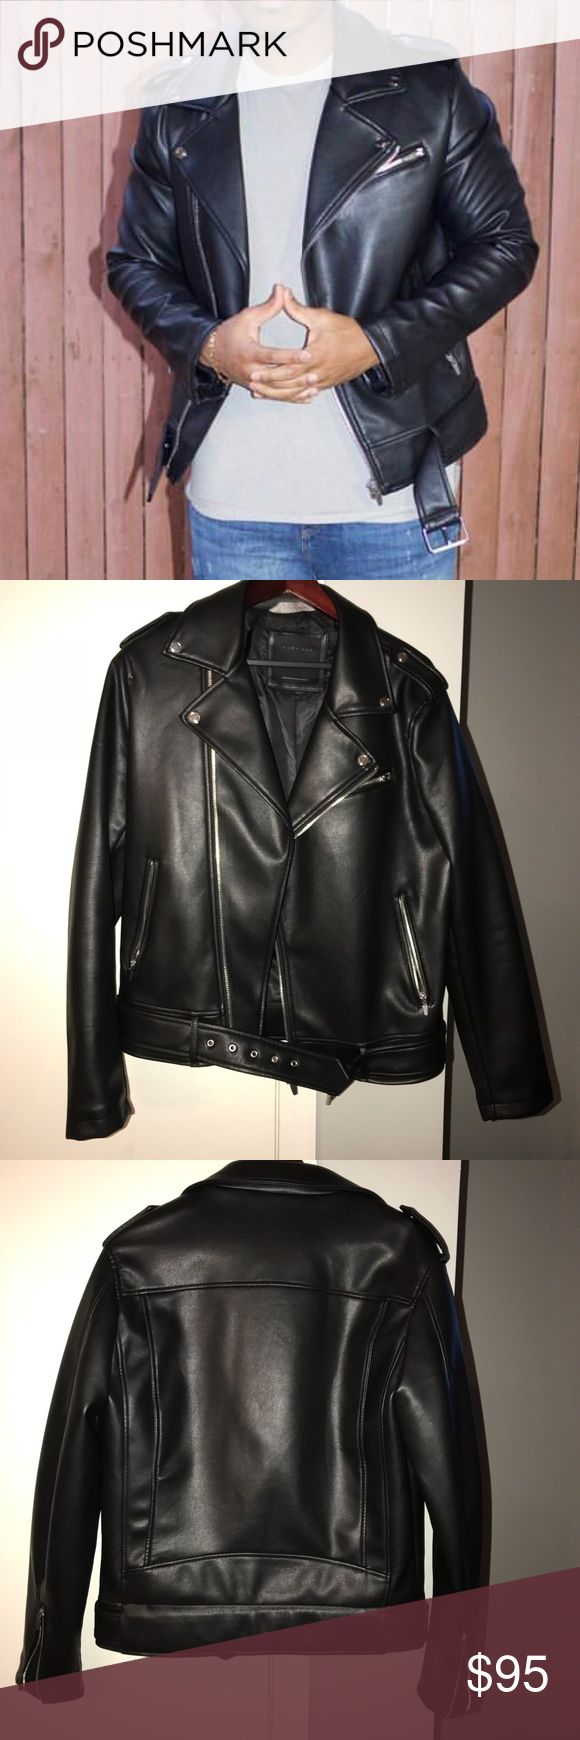 Zara Black Leather Biker Jacket This jacket was worn one time for a modeling shoot in NYC. It's in like new conditions. Zara Jackets & Coats